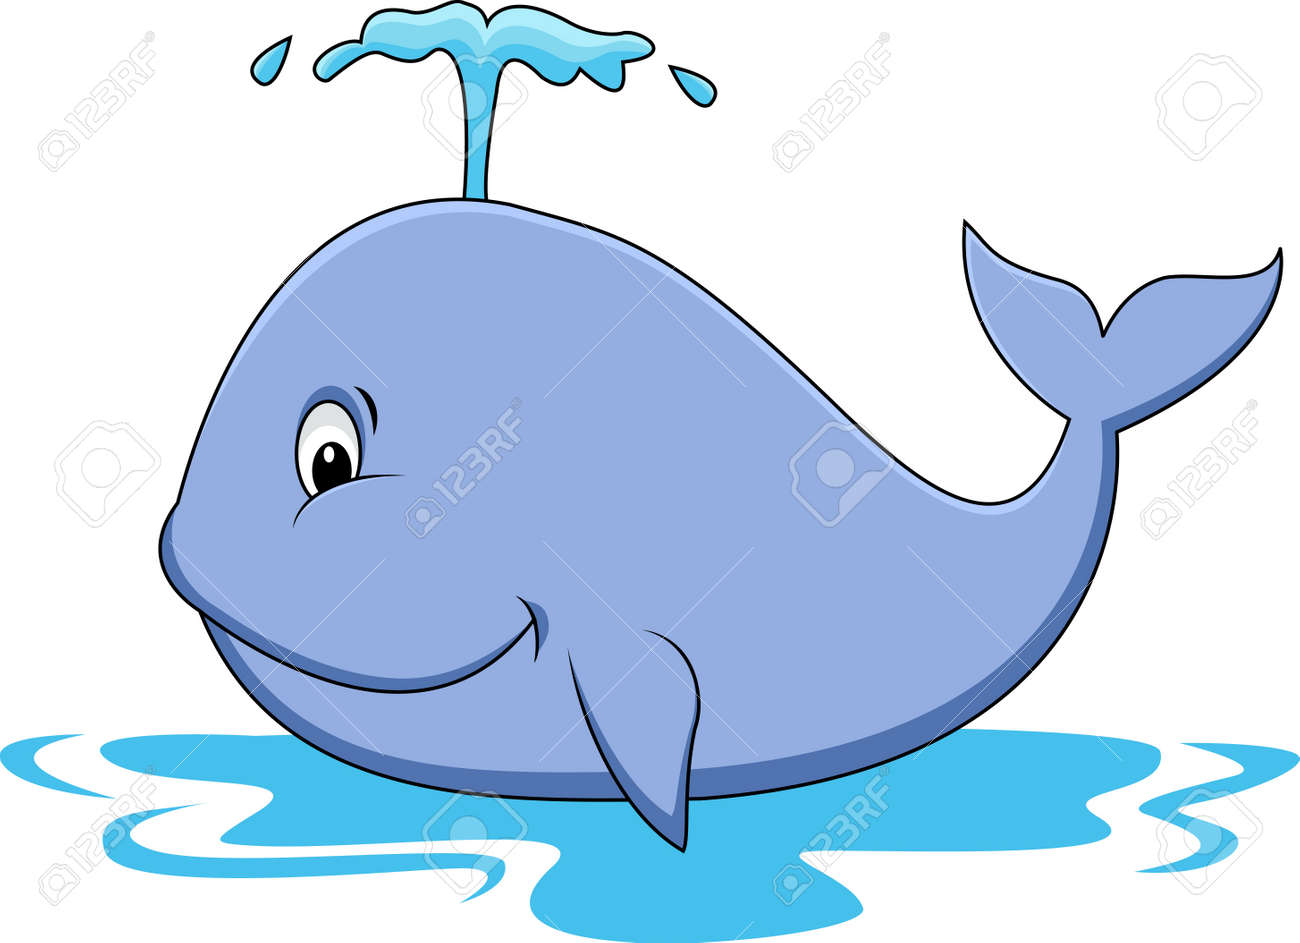 14,401 Whale Stock Vector Illustration And Royalty Free Whale Clipart